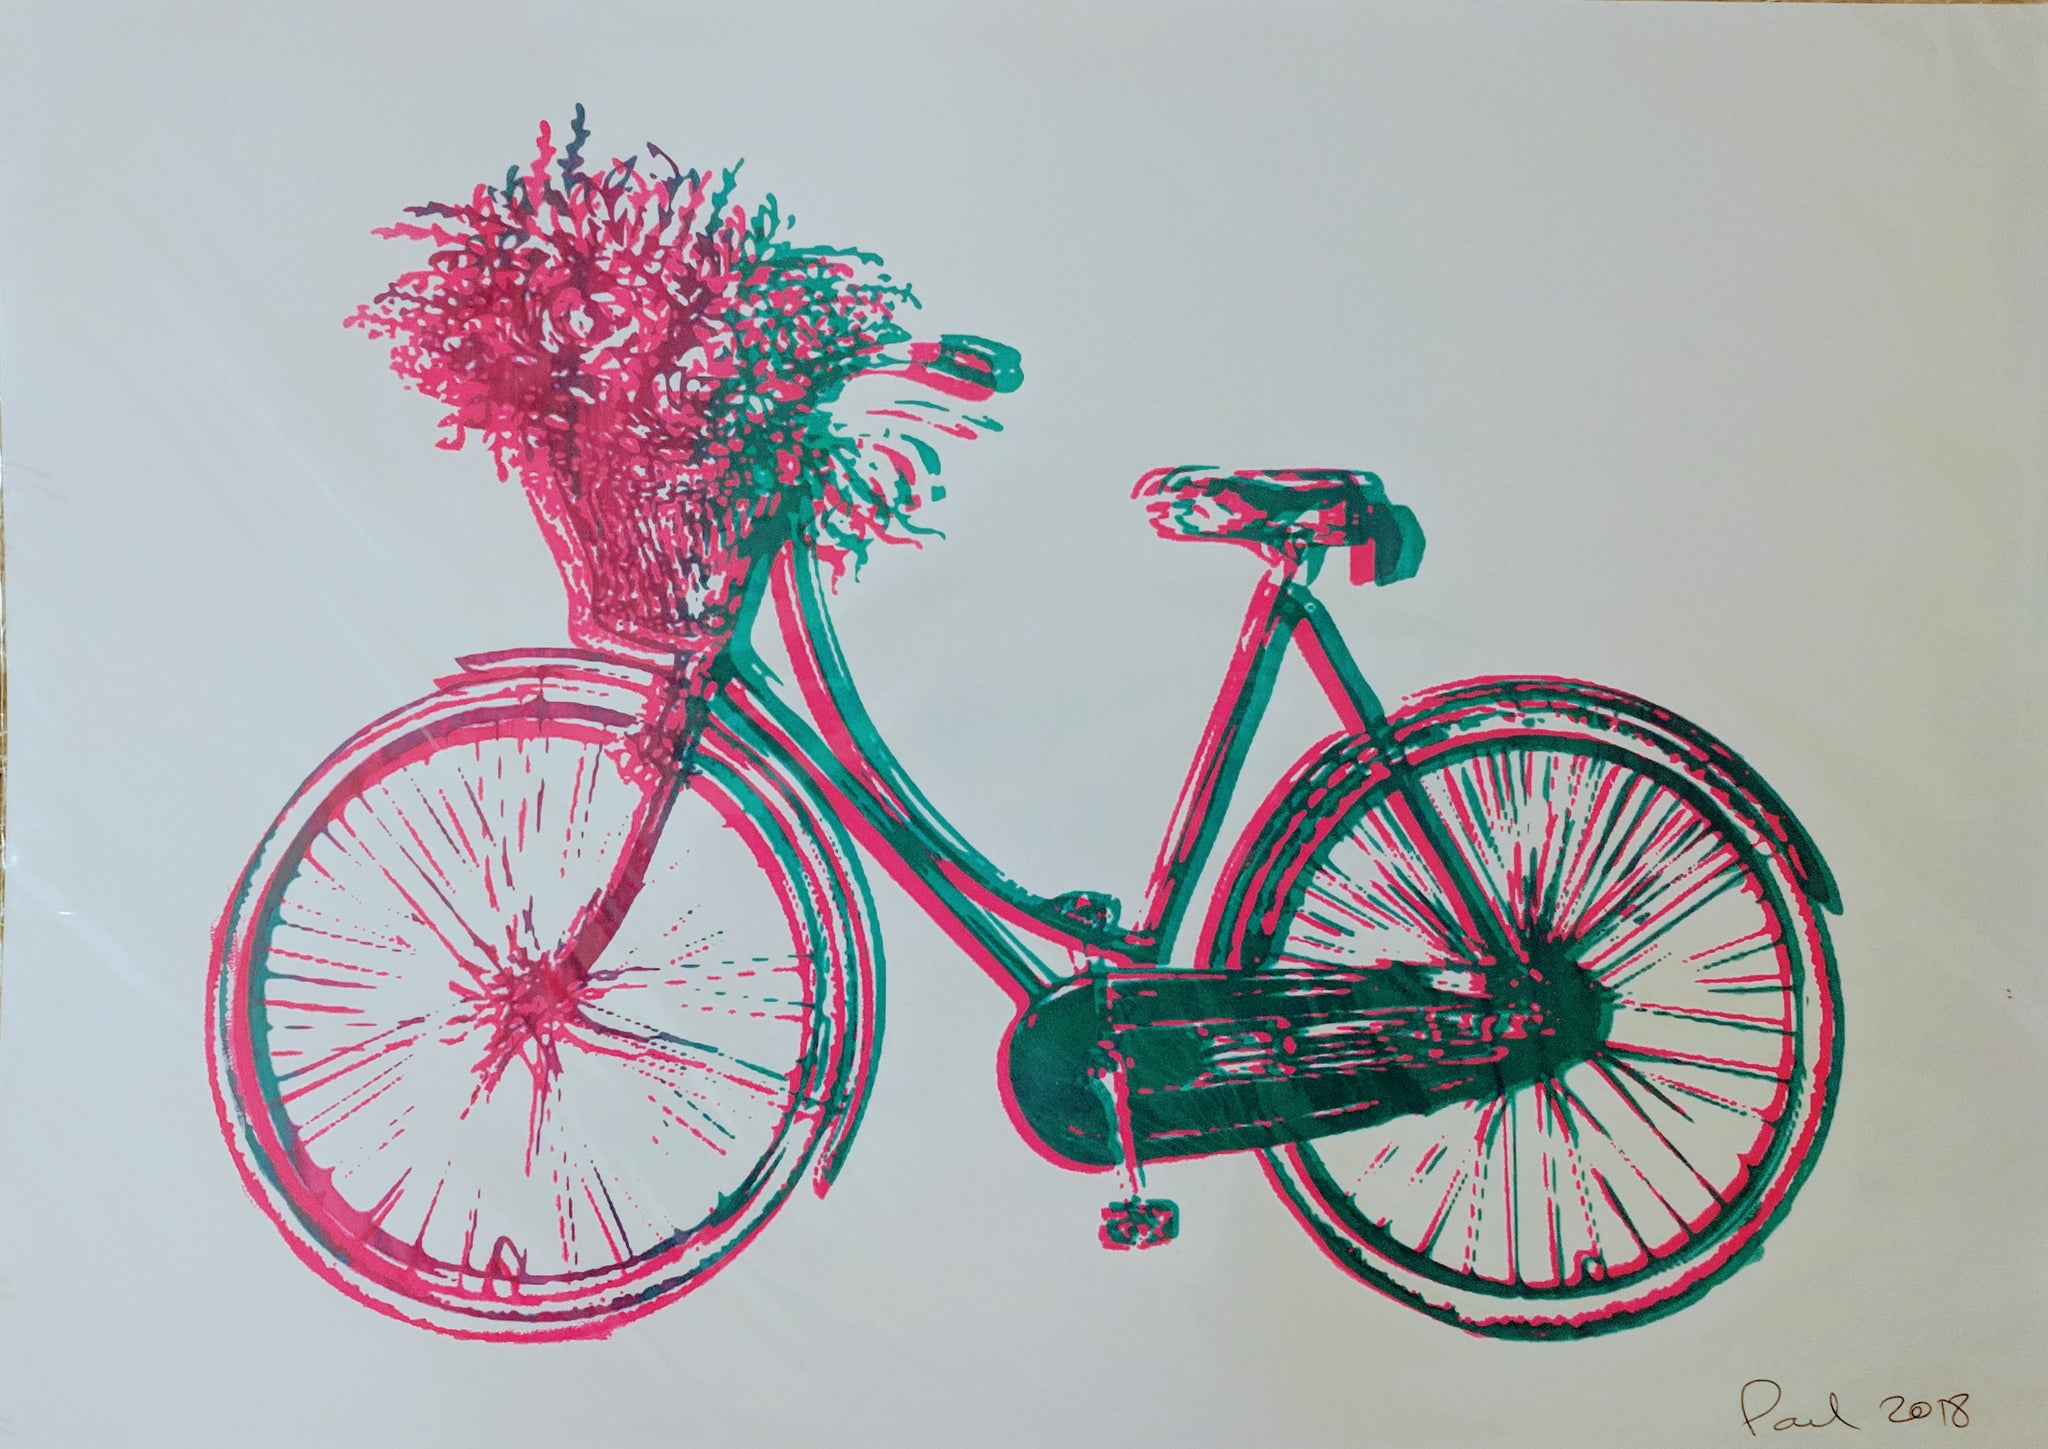 Original BICYCLE screen print by Paul McNeil